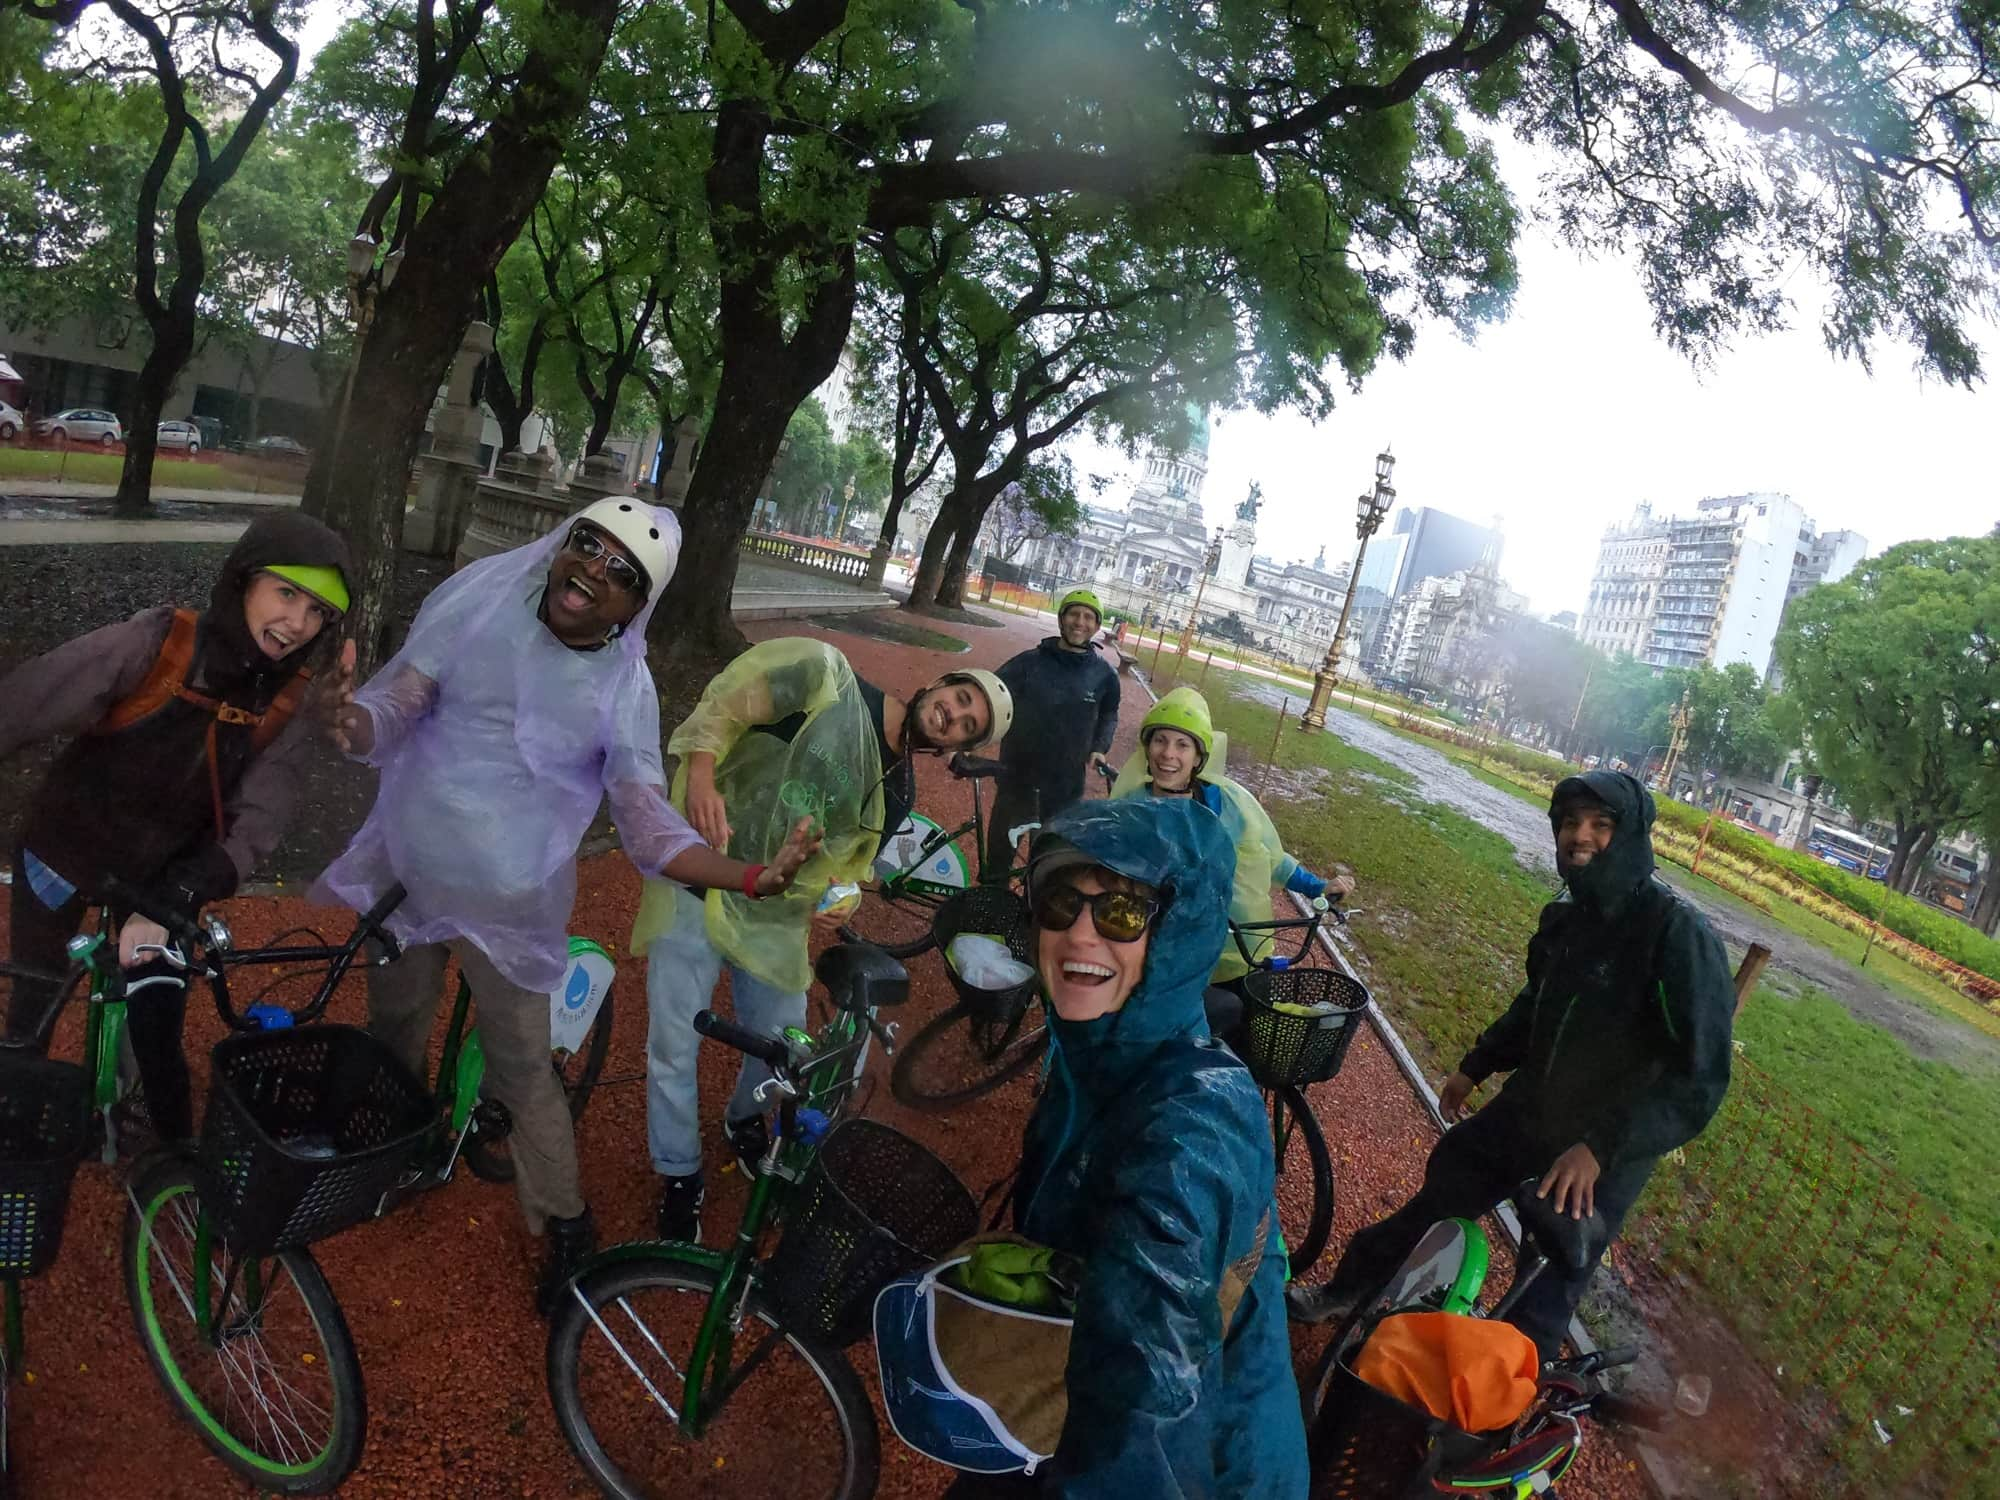 Explore Buenos Aires and it's amazing food scene by bike. See the photos and read about my experience in my BA Bikes review of their Food Bike Tour.